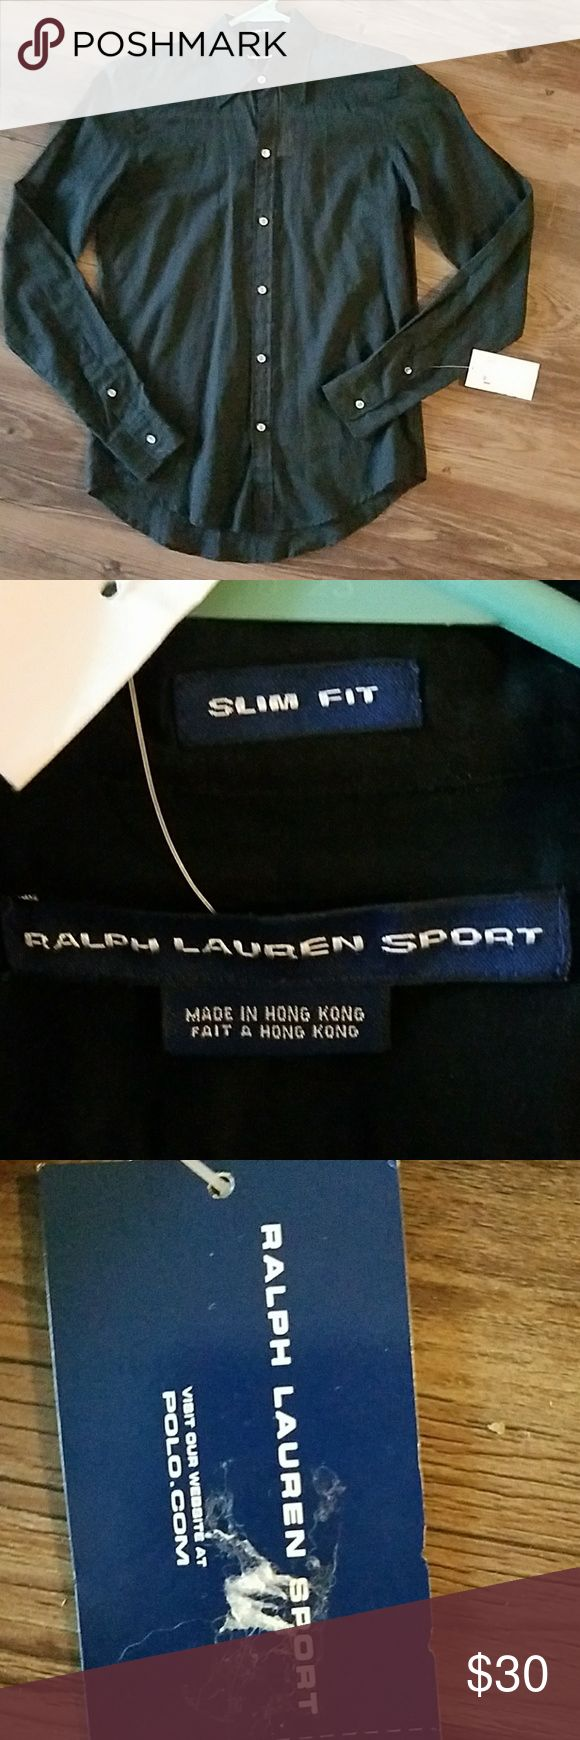 RALPH LAUREN 👕 NWT.. BLACK BUTTON DOWN SHIRT RALPH LAUREN SPORT..Slim Fit..NWT..womens black long sleeve collared button down shirt..size 2..Even comes with extra buttons..100% cotton..PERFECT CONDITION!!!! RALPH LAUREN  Tops